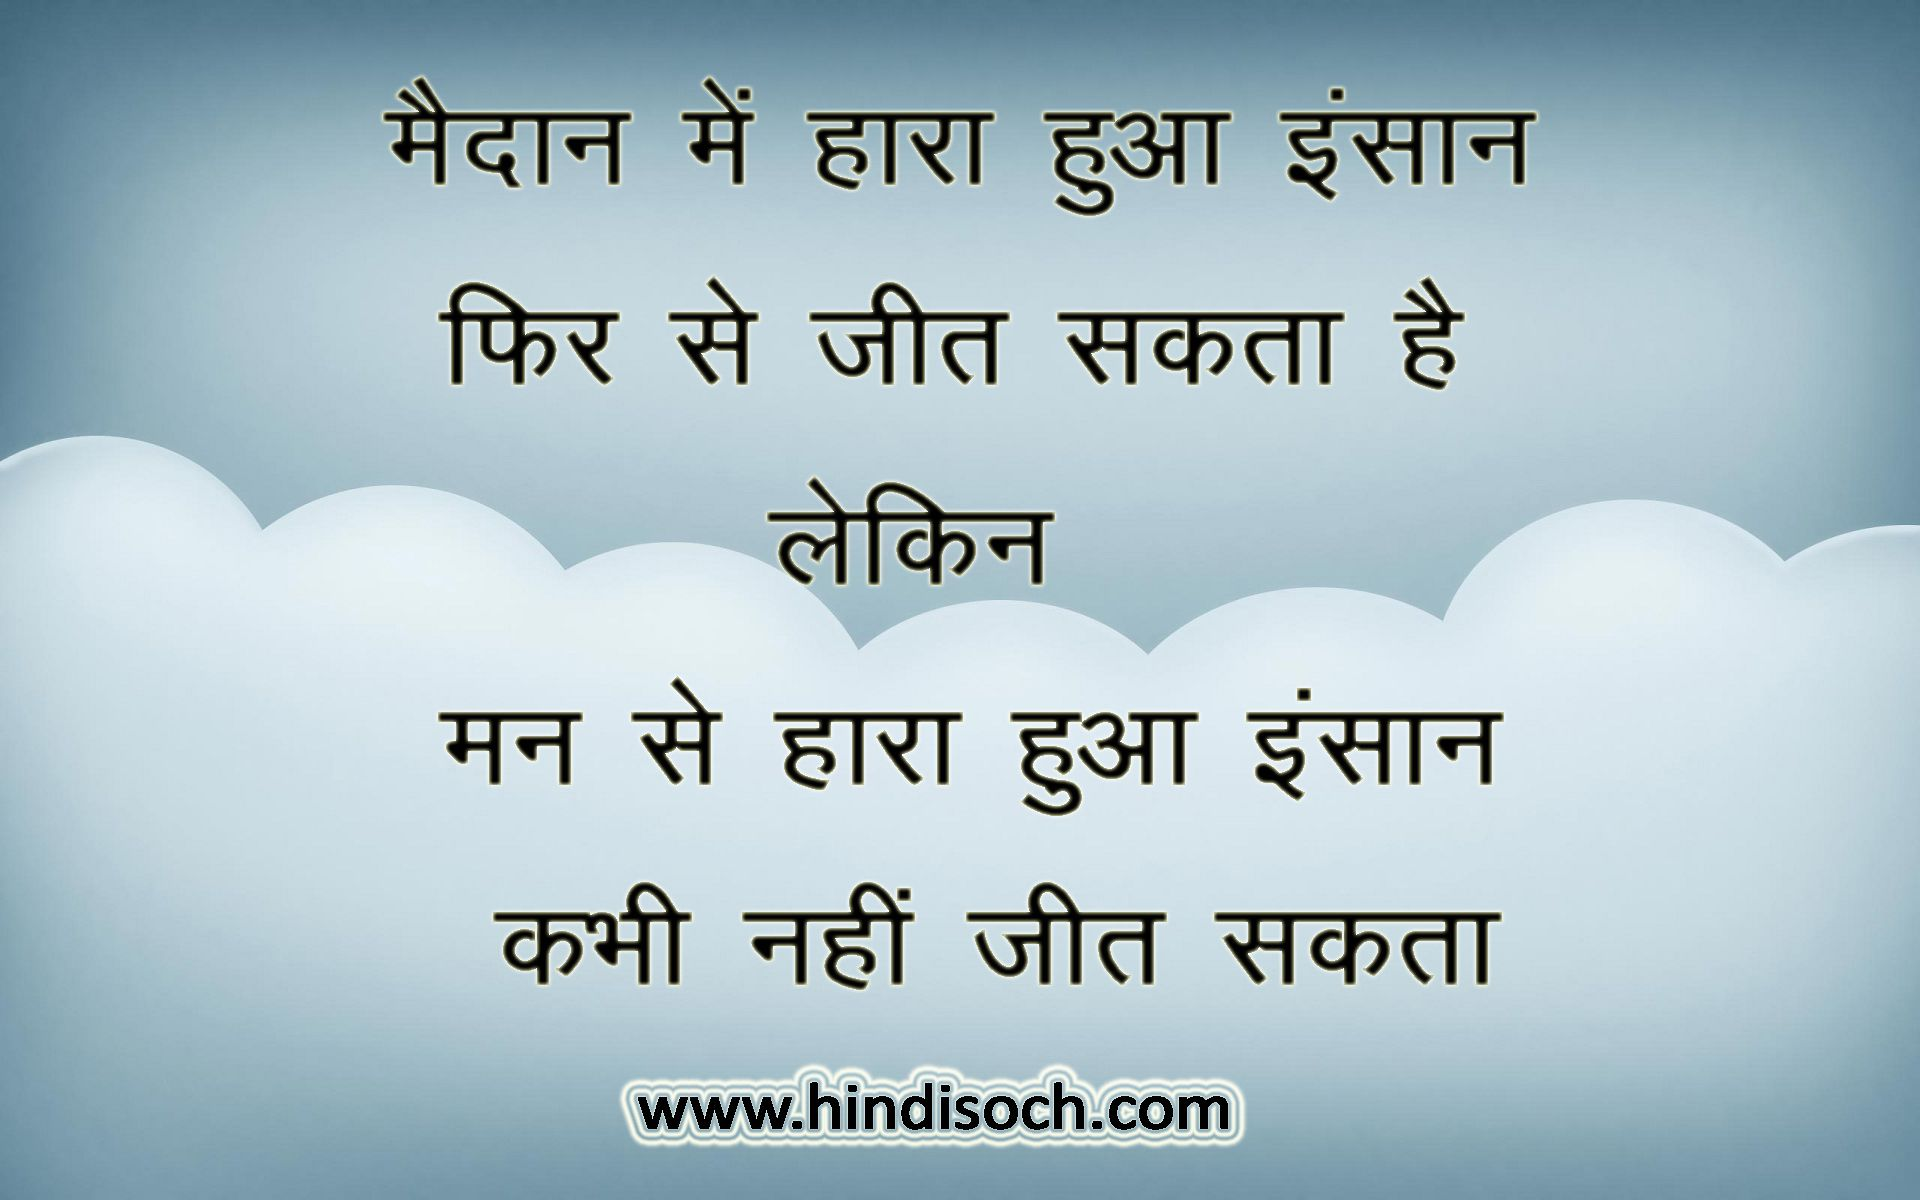 Top Quotes About Life 50 Life Inspirational Motivational Quotes In Hindi With Images